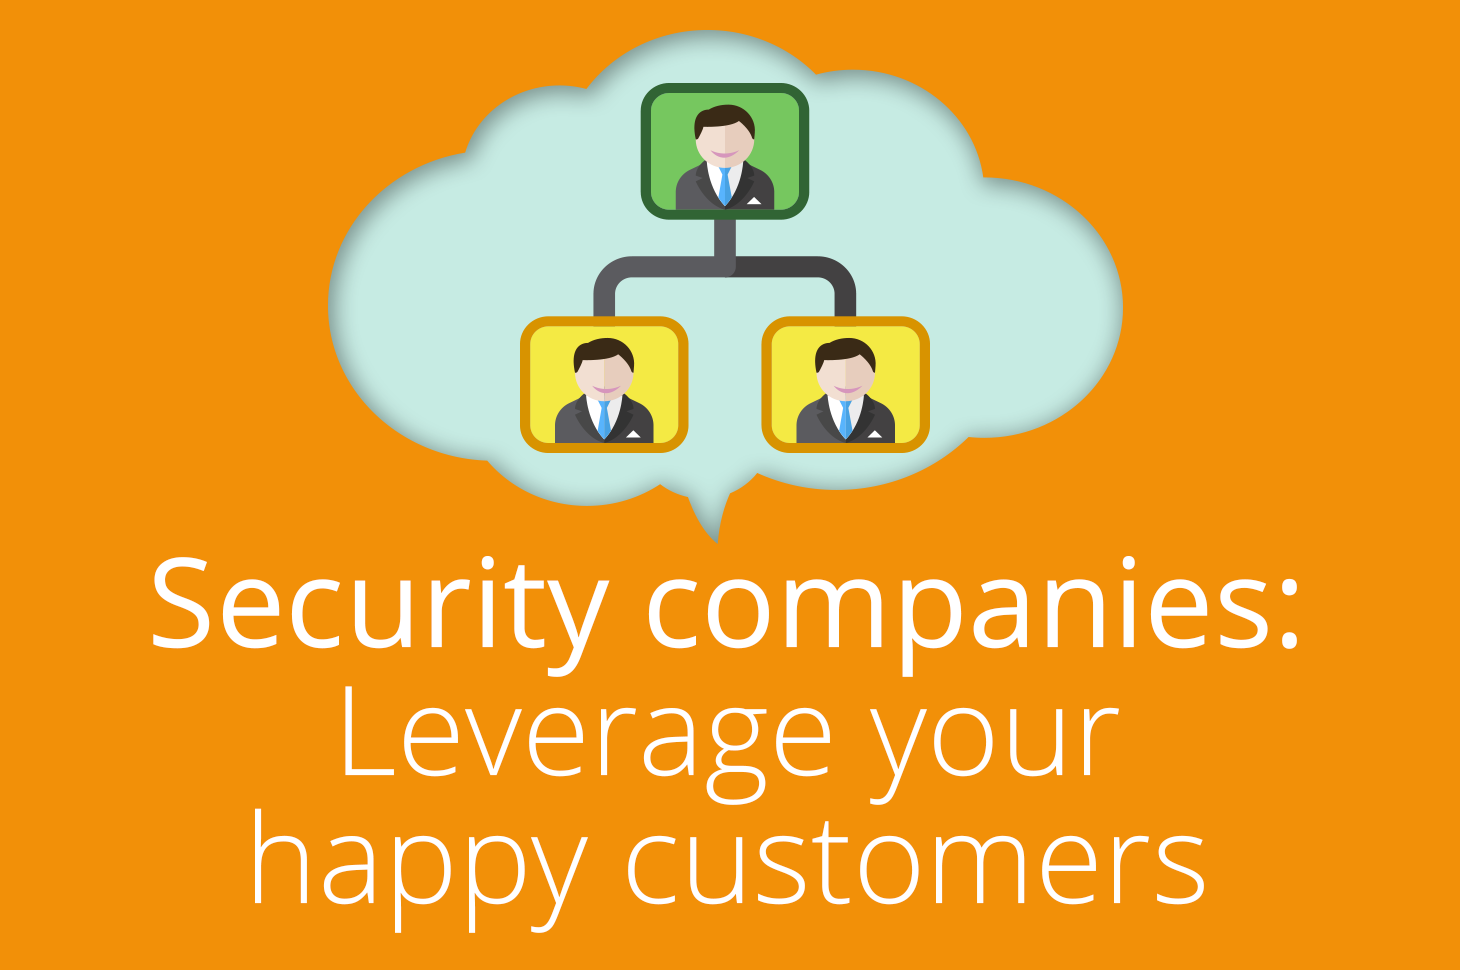 SecurityHappyCustomers